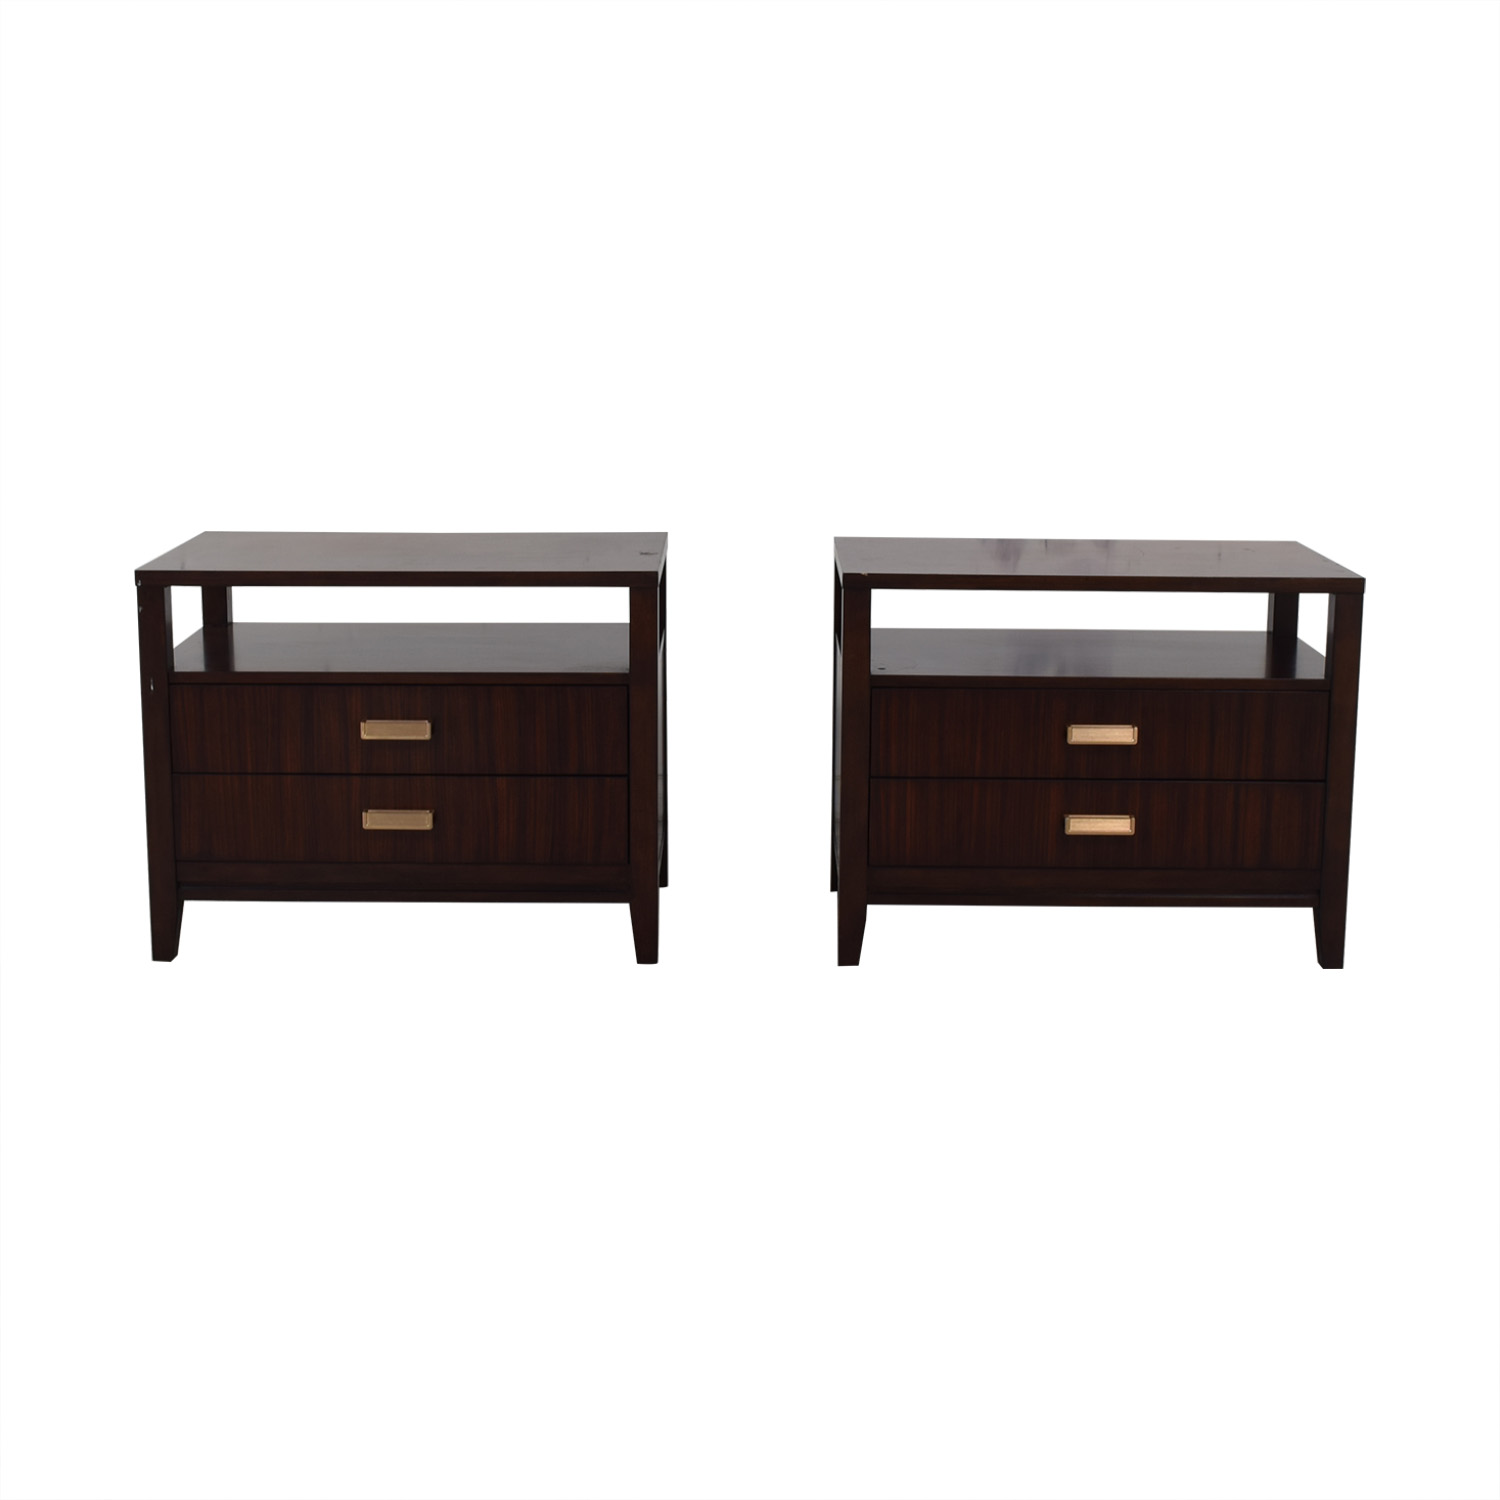 Lexington Furniture Lexington Furniture Wood Two Drawer Nightstands dimensions